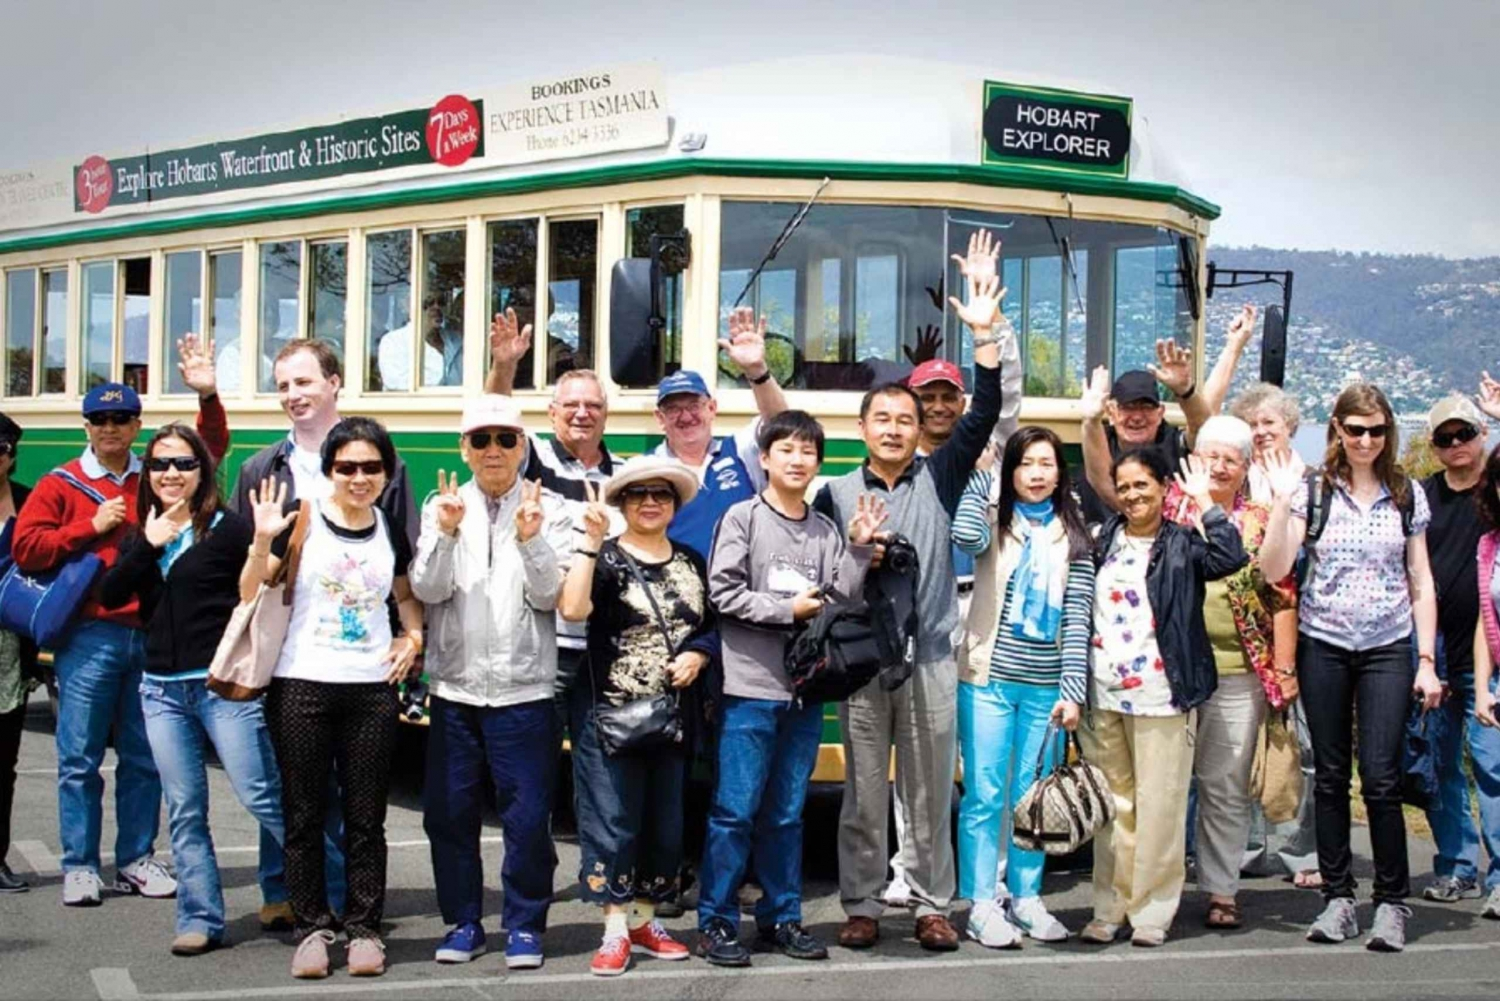 3-Hour Hobart City Sightseeing Tour